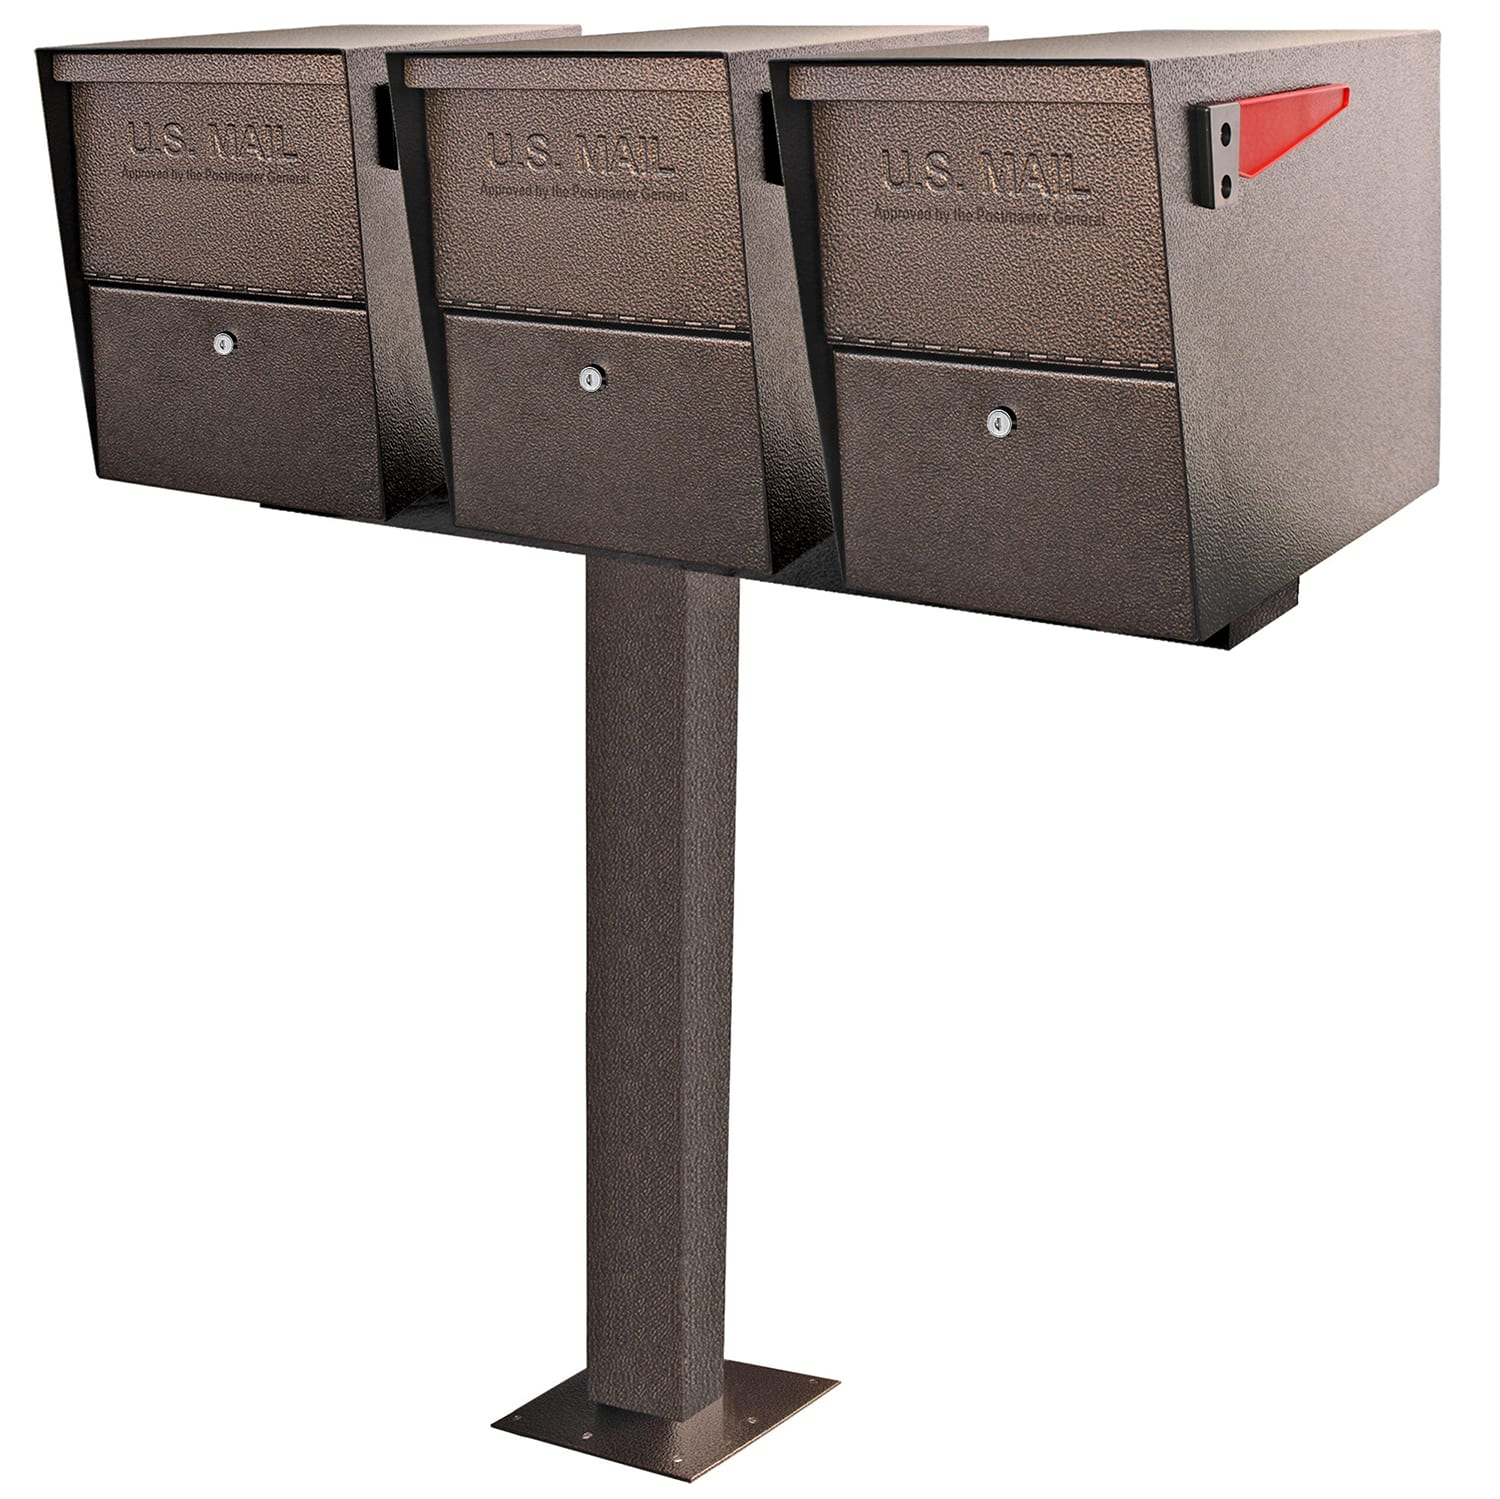 Mount Multiple outdoor mailboxes with the easy to install 4 mailbox spreader bar by mail boss